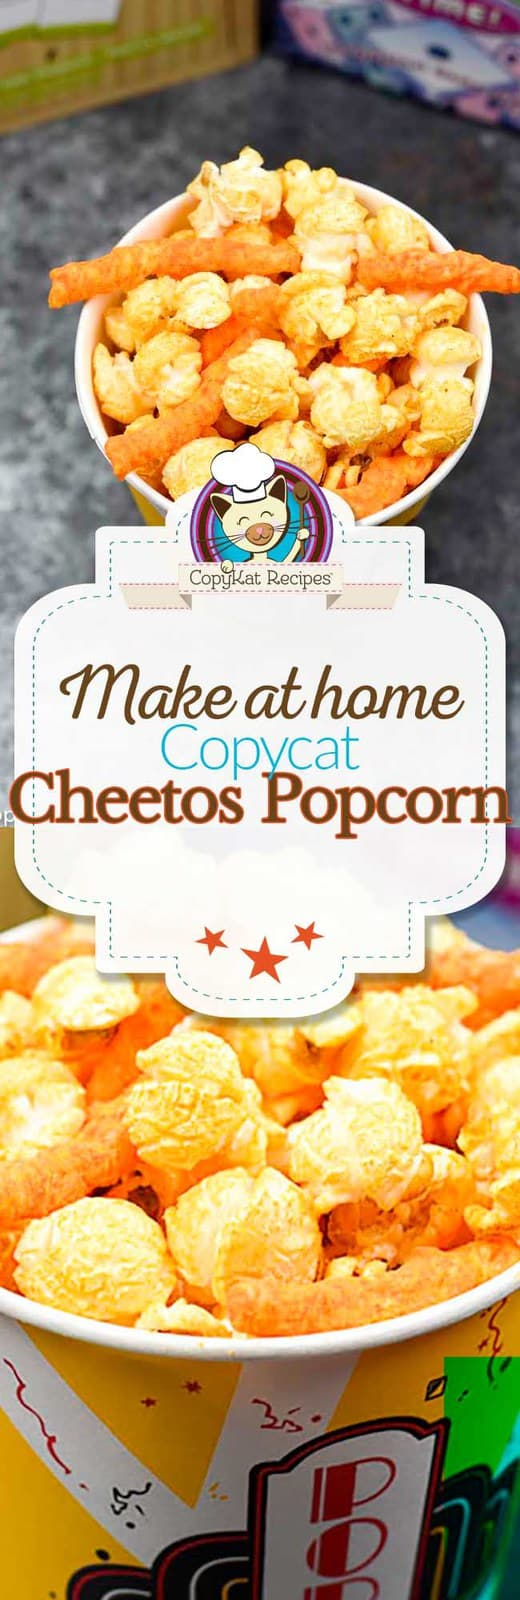 You can recreate copycat Cheetos Popcorn at home.  This recipe is perfect for cheese lovers! #snack #popcorn #cheesepopcorn #copycat